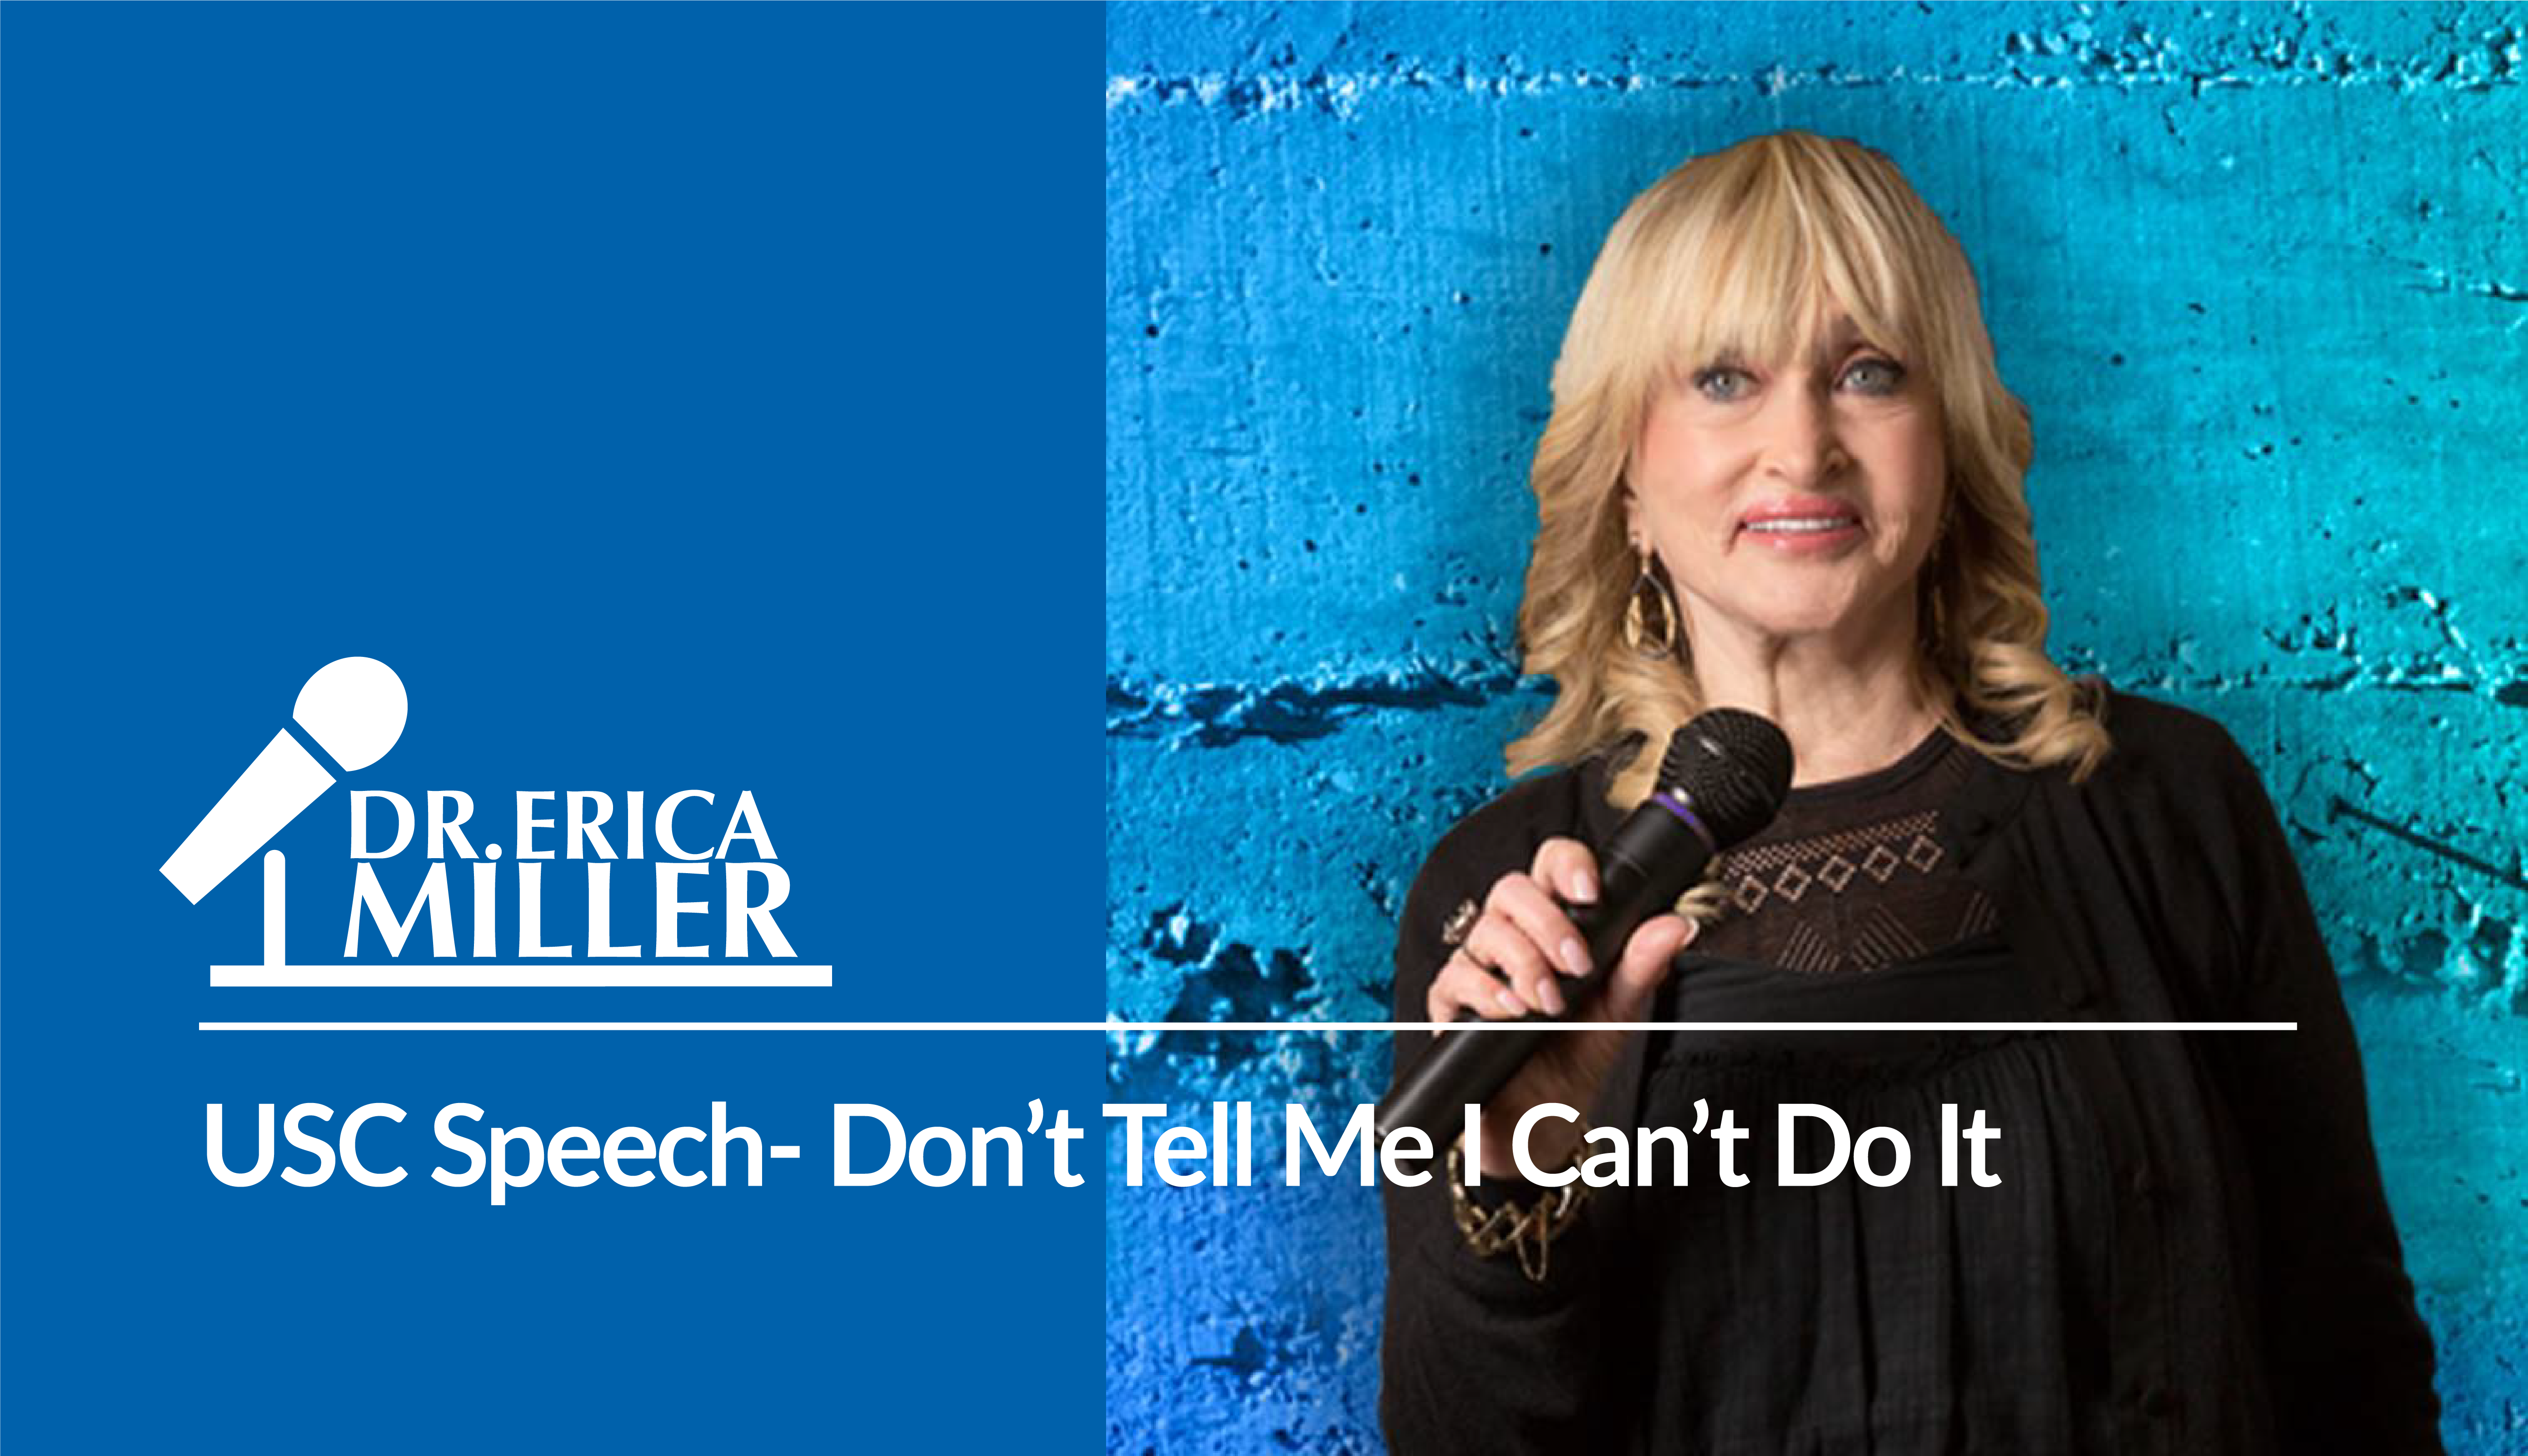 USC Speech- Don't Tell Me I Can't Do It. If I Can Do It So Can You